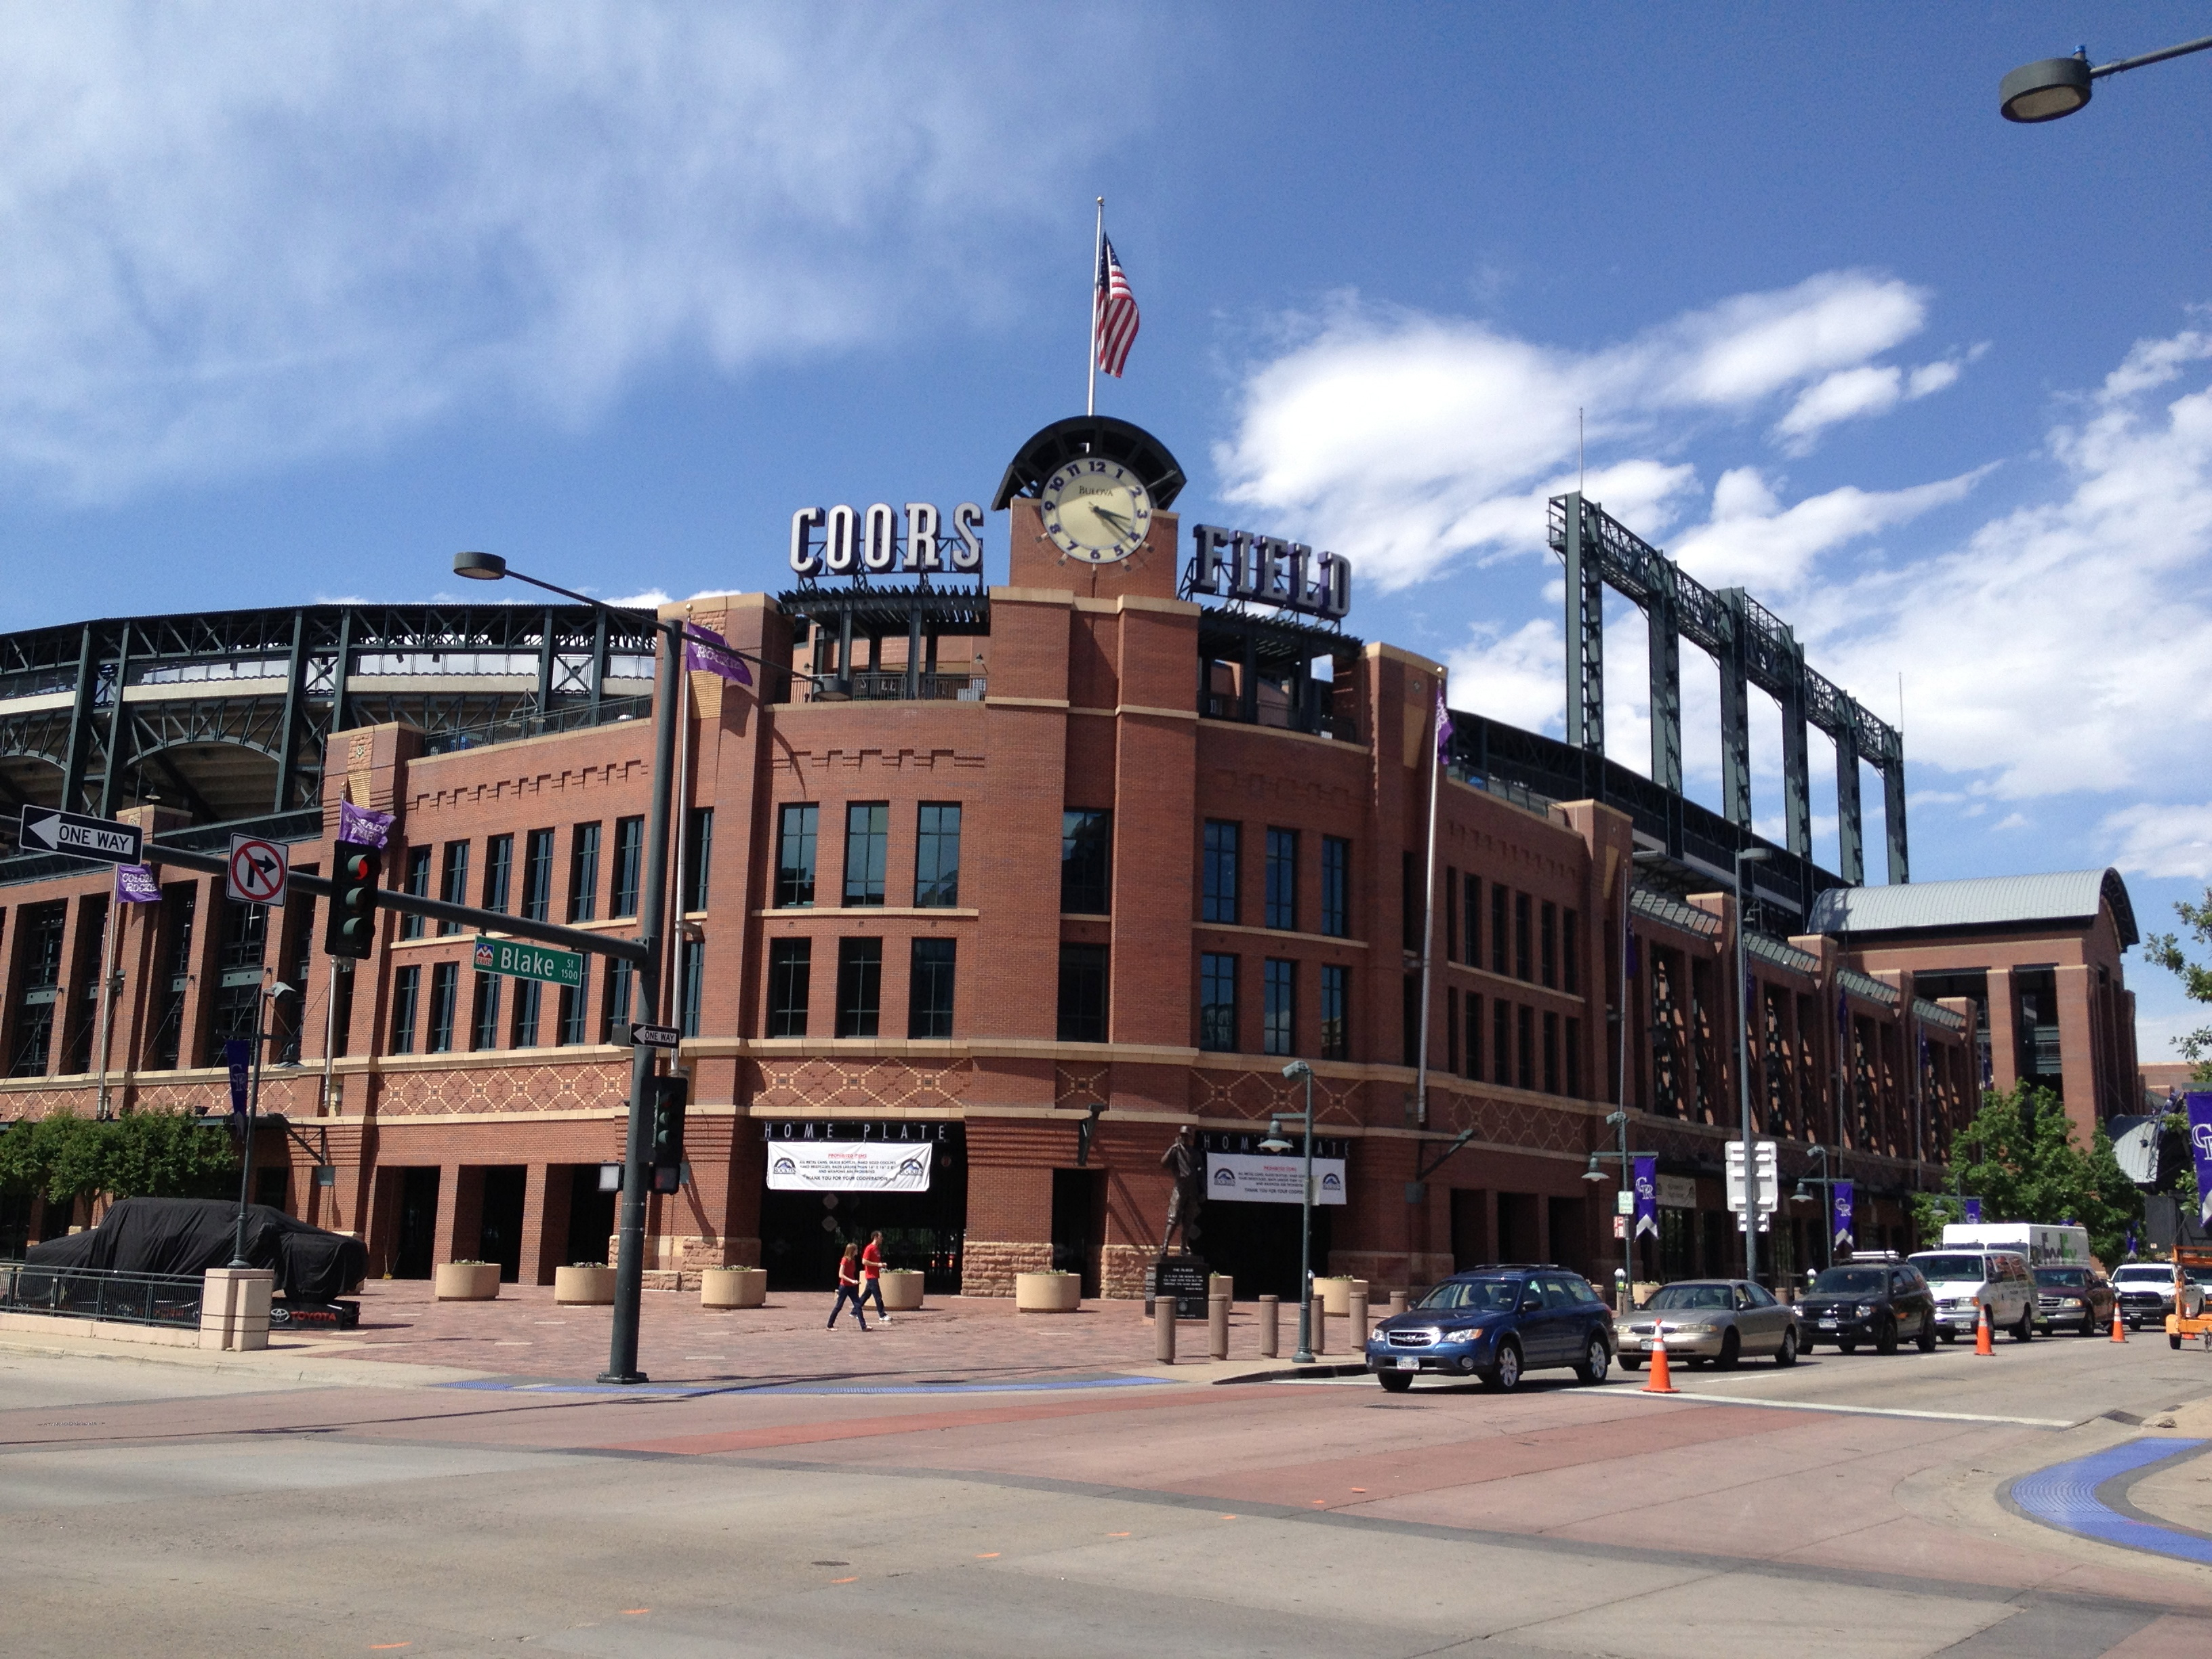 Finish: Coors Field & Lodo €� Denver Is A Great City For Sports With Every  Major Professional Sport Represented And Several Smaller Professional And